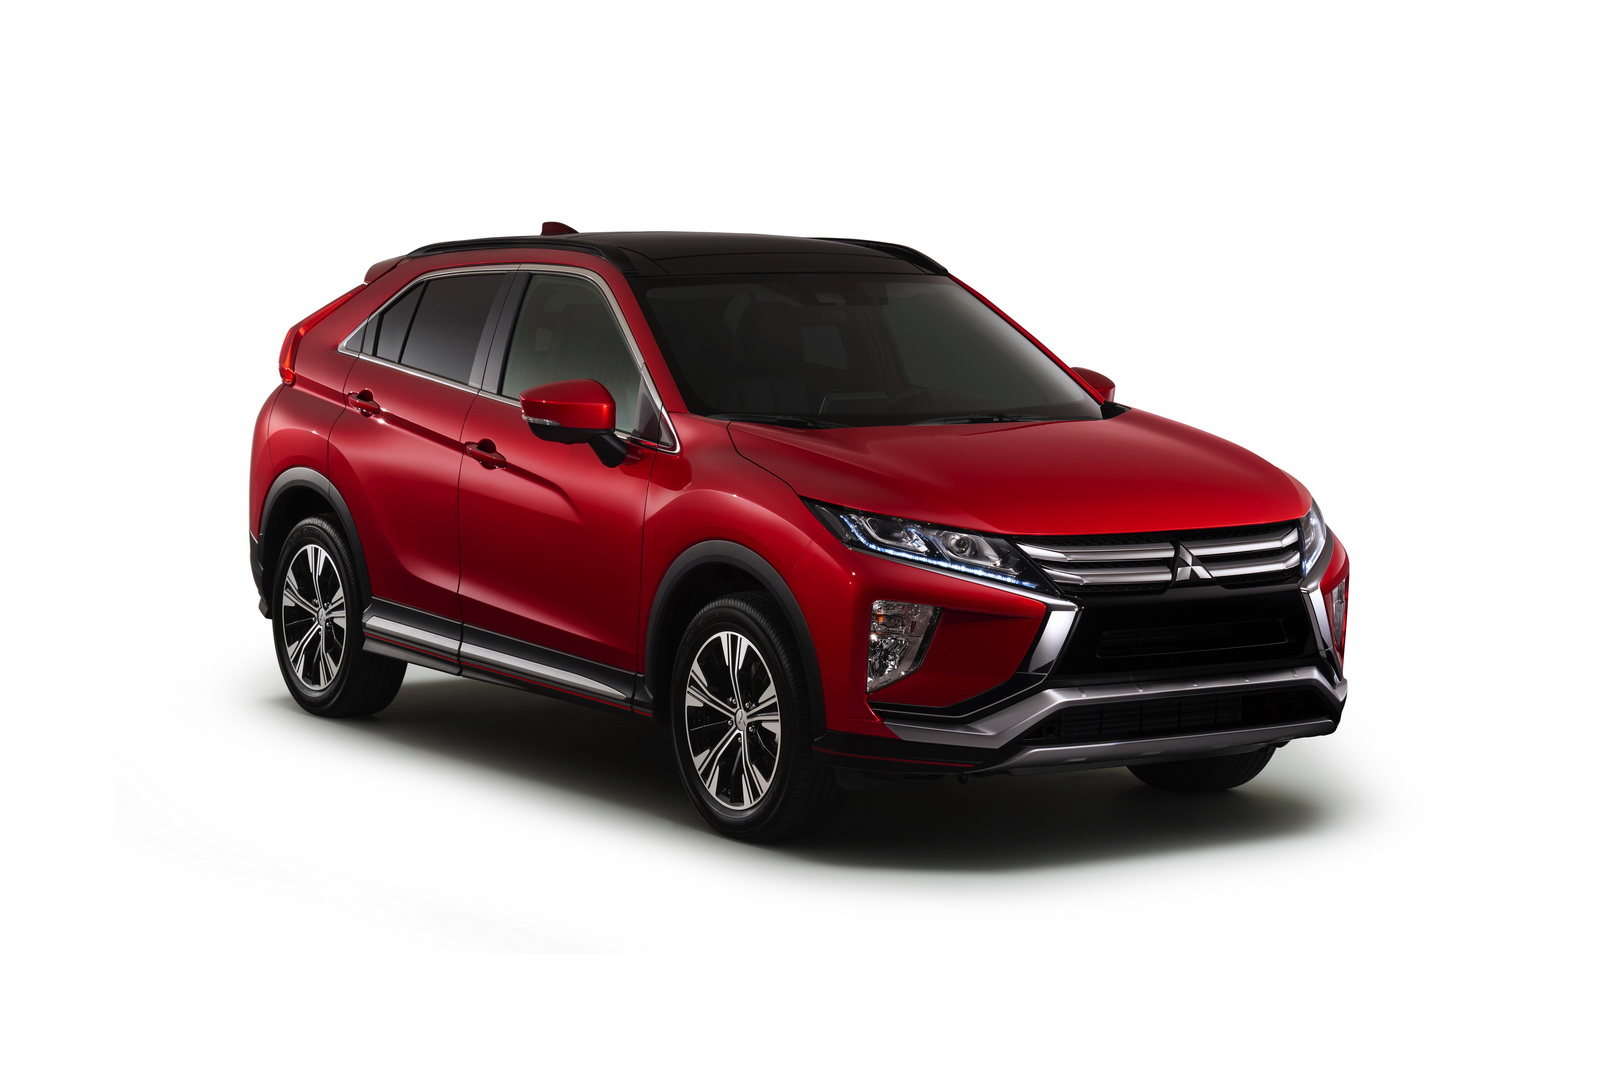 new mitsubishi eclipse cross suv india launch date. Black Bedroom Furniture Sets. Home Design Ideas